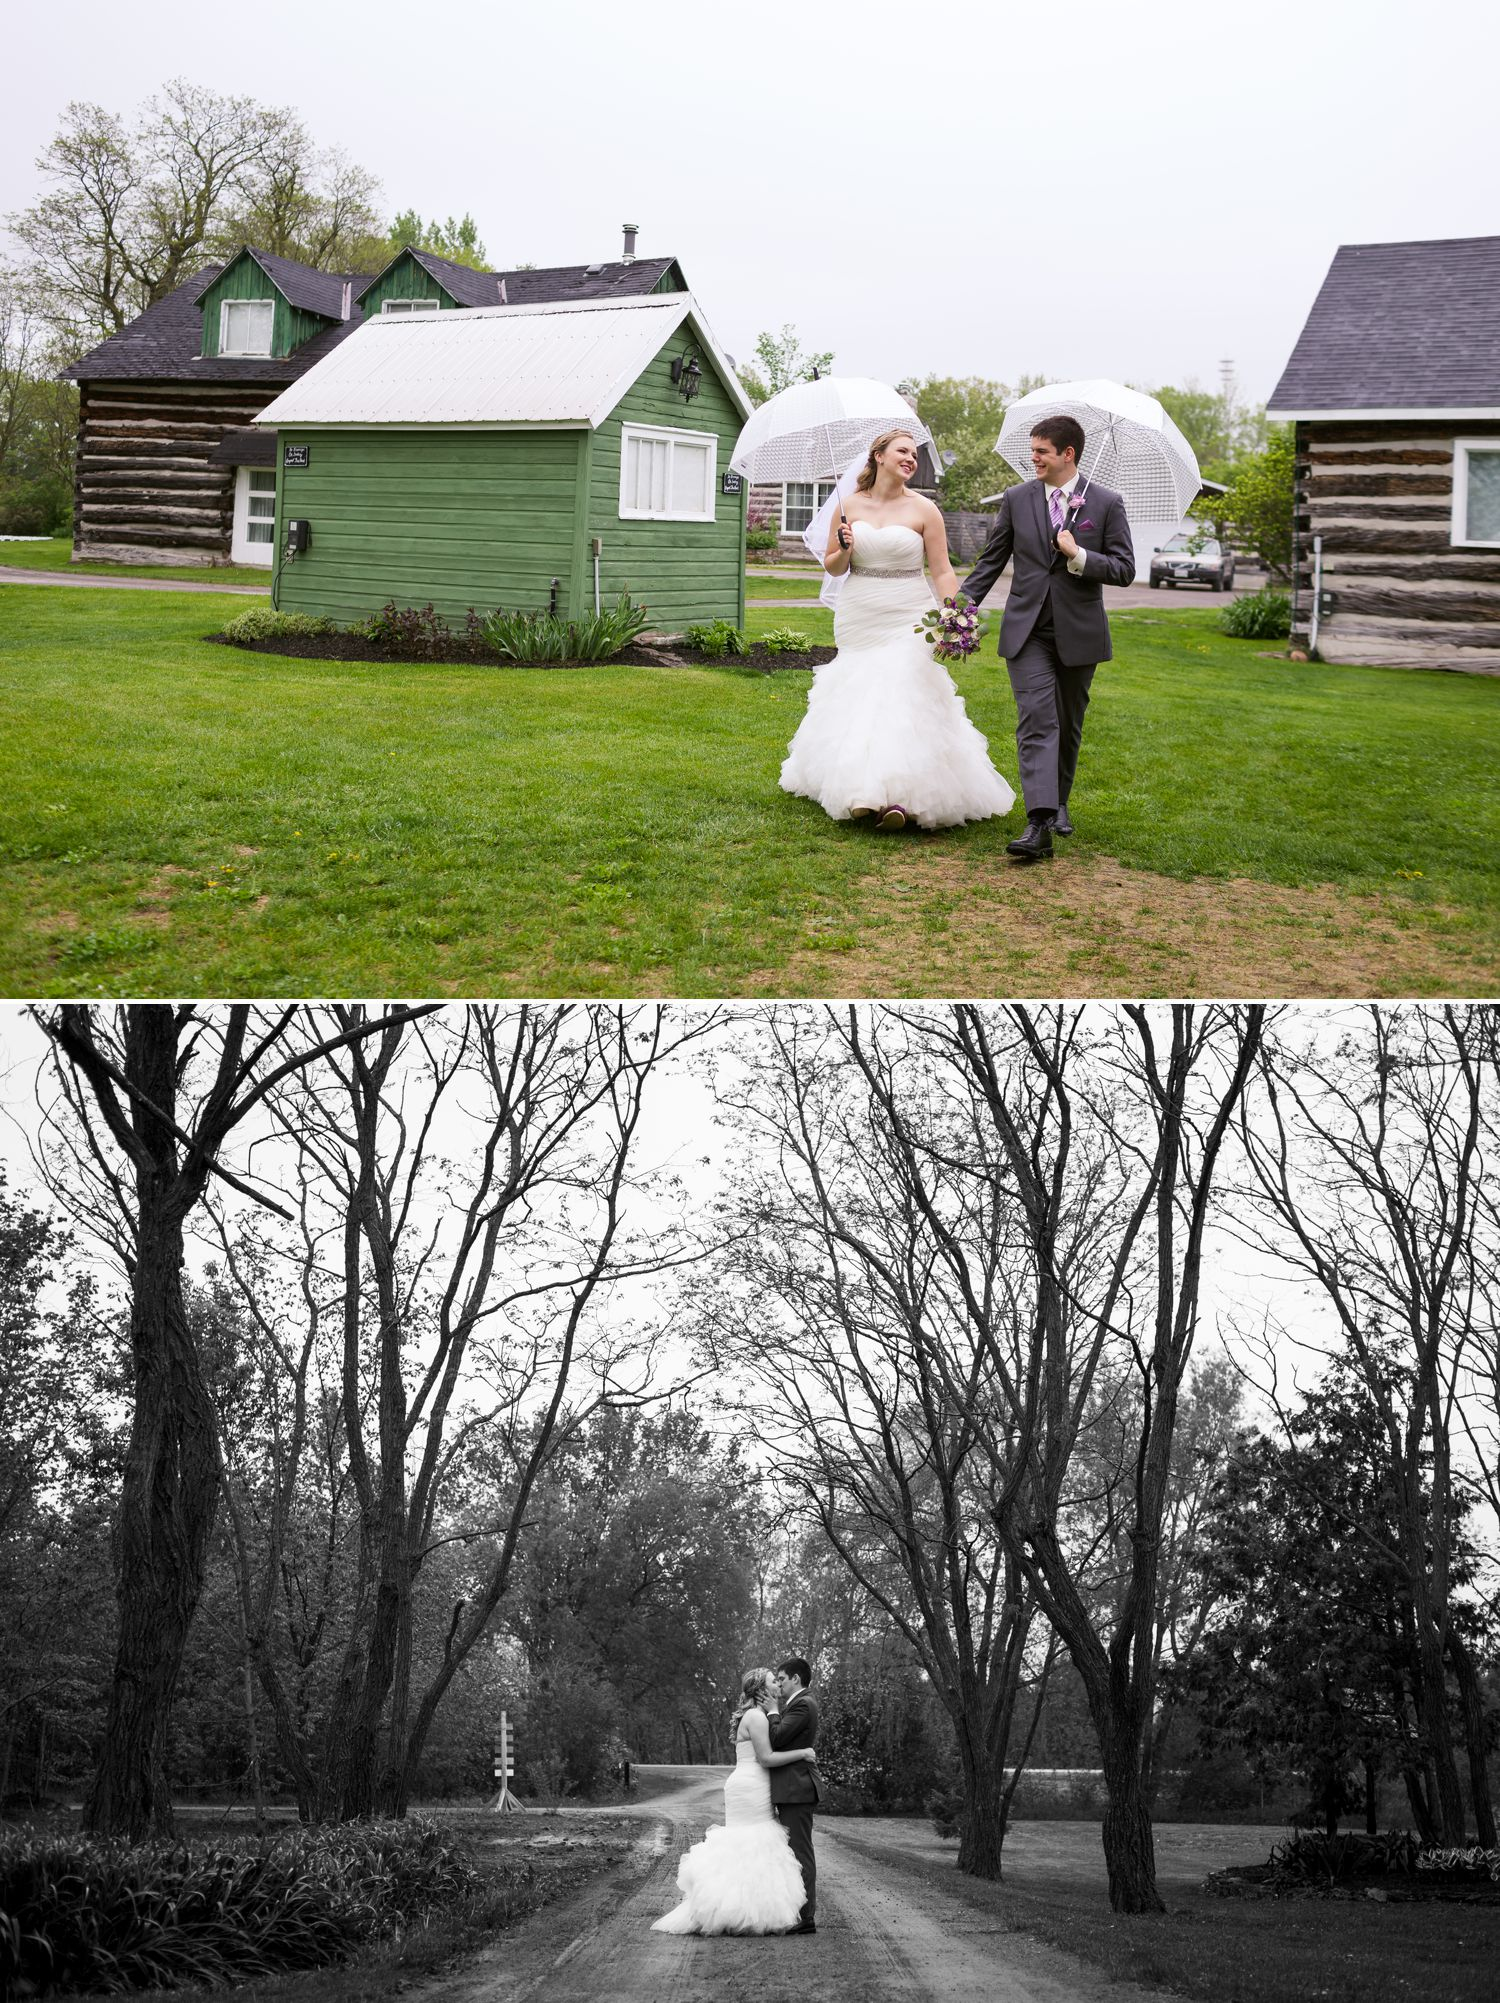 The bride and groom together after their outdoor ceremony at Stonefields wedding venue